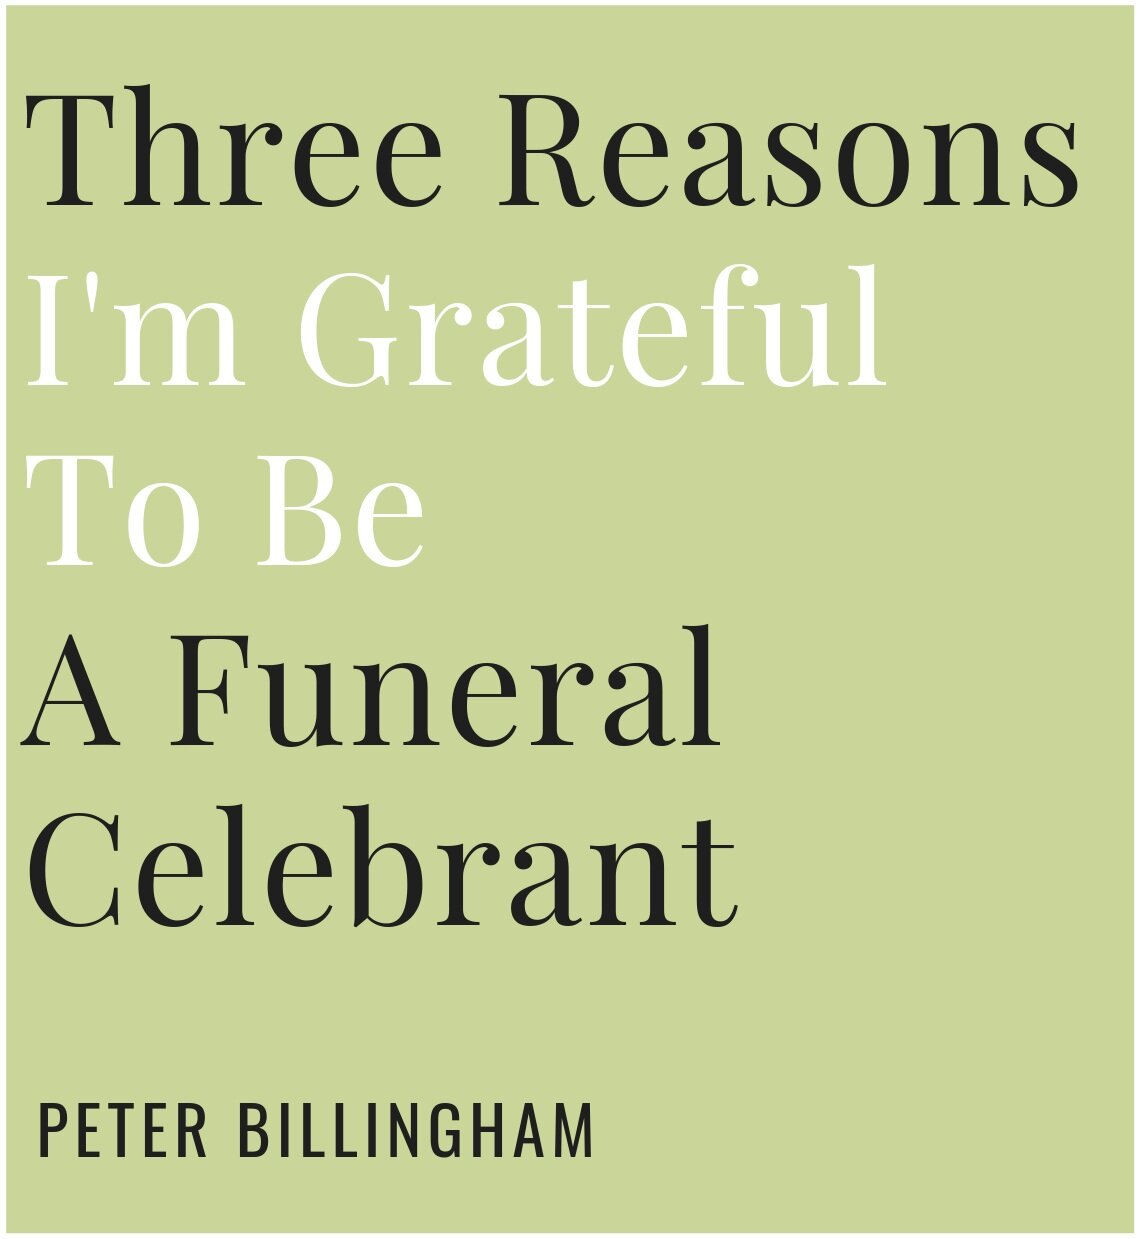 Peter Billingham explains why he is grateful he is a funeral celebrant.